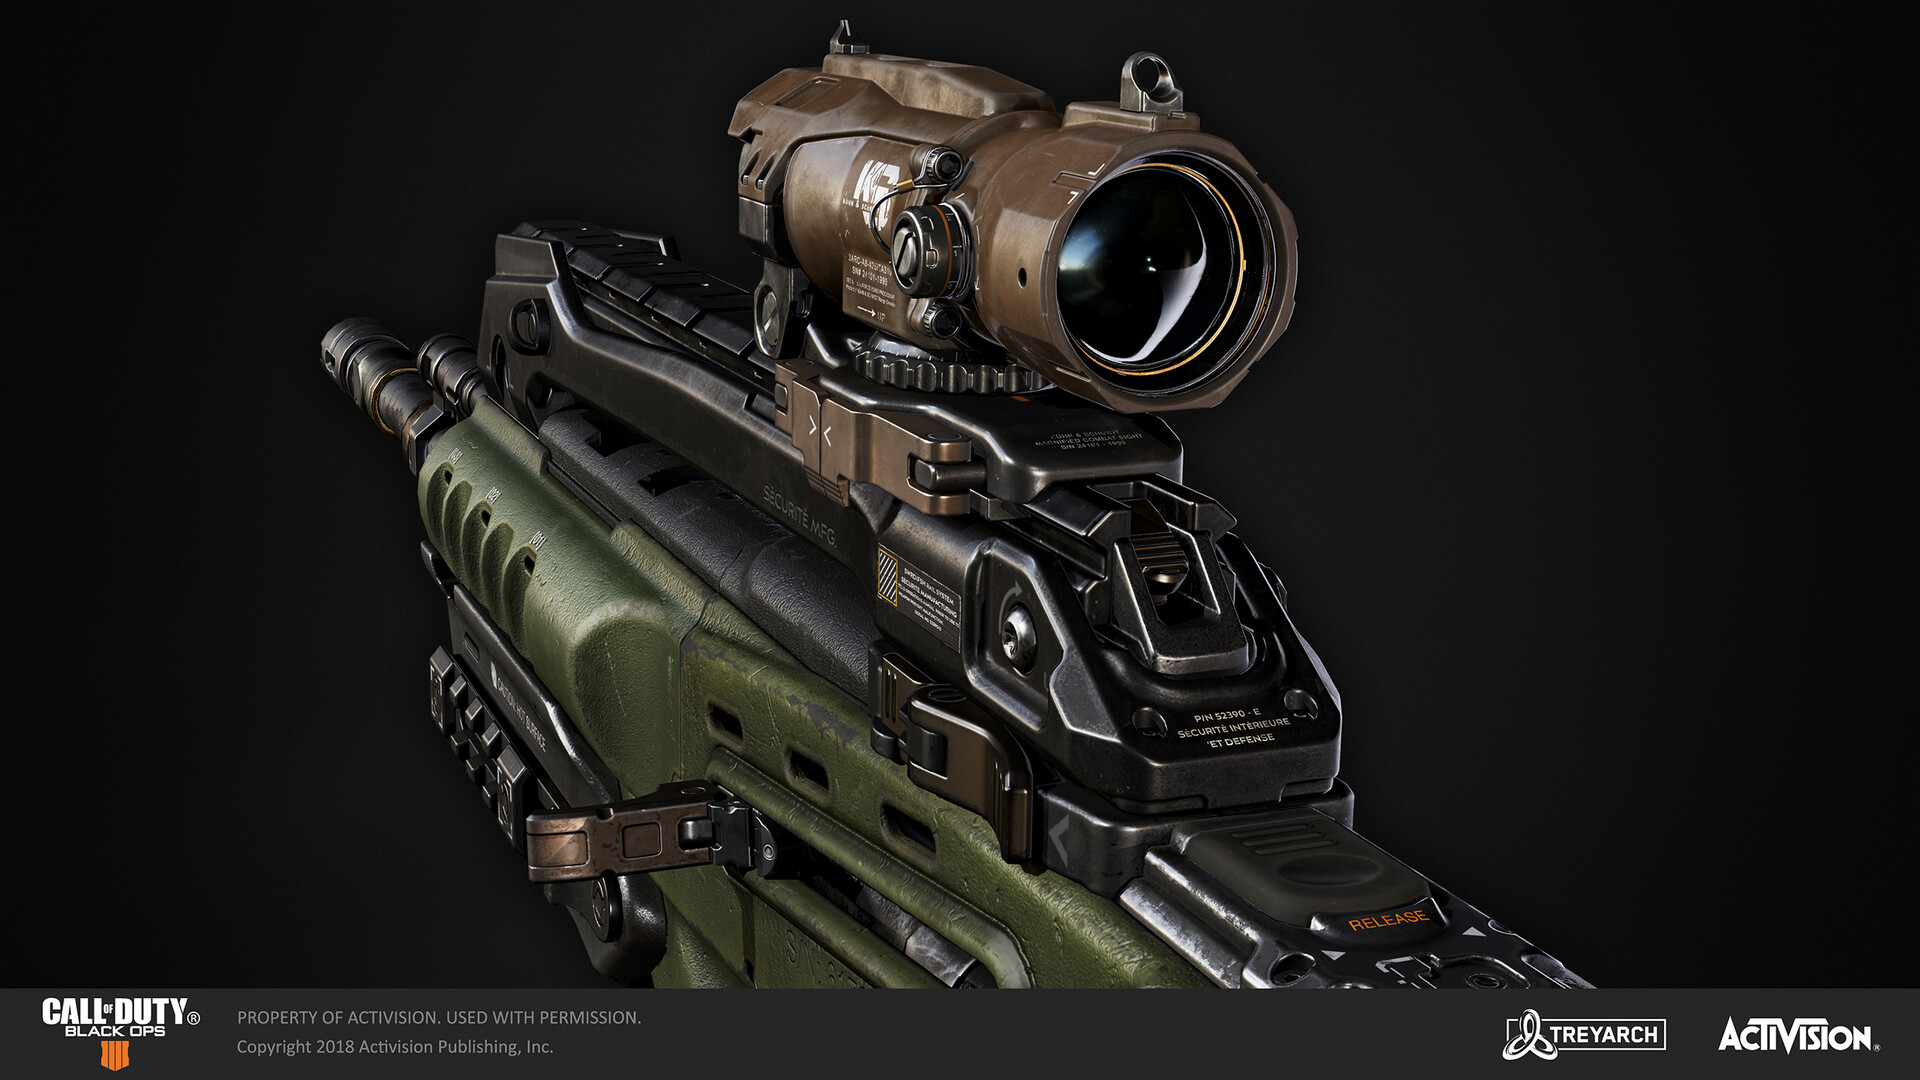 Ethan hiley 16 ethan hiley t8 2x scope ds